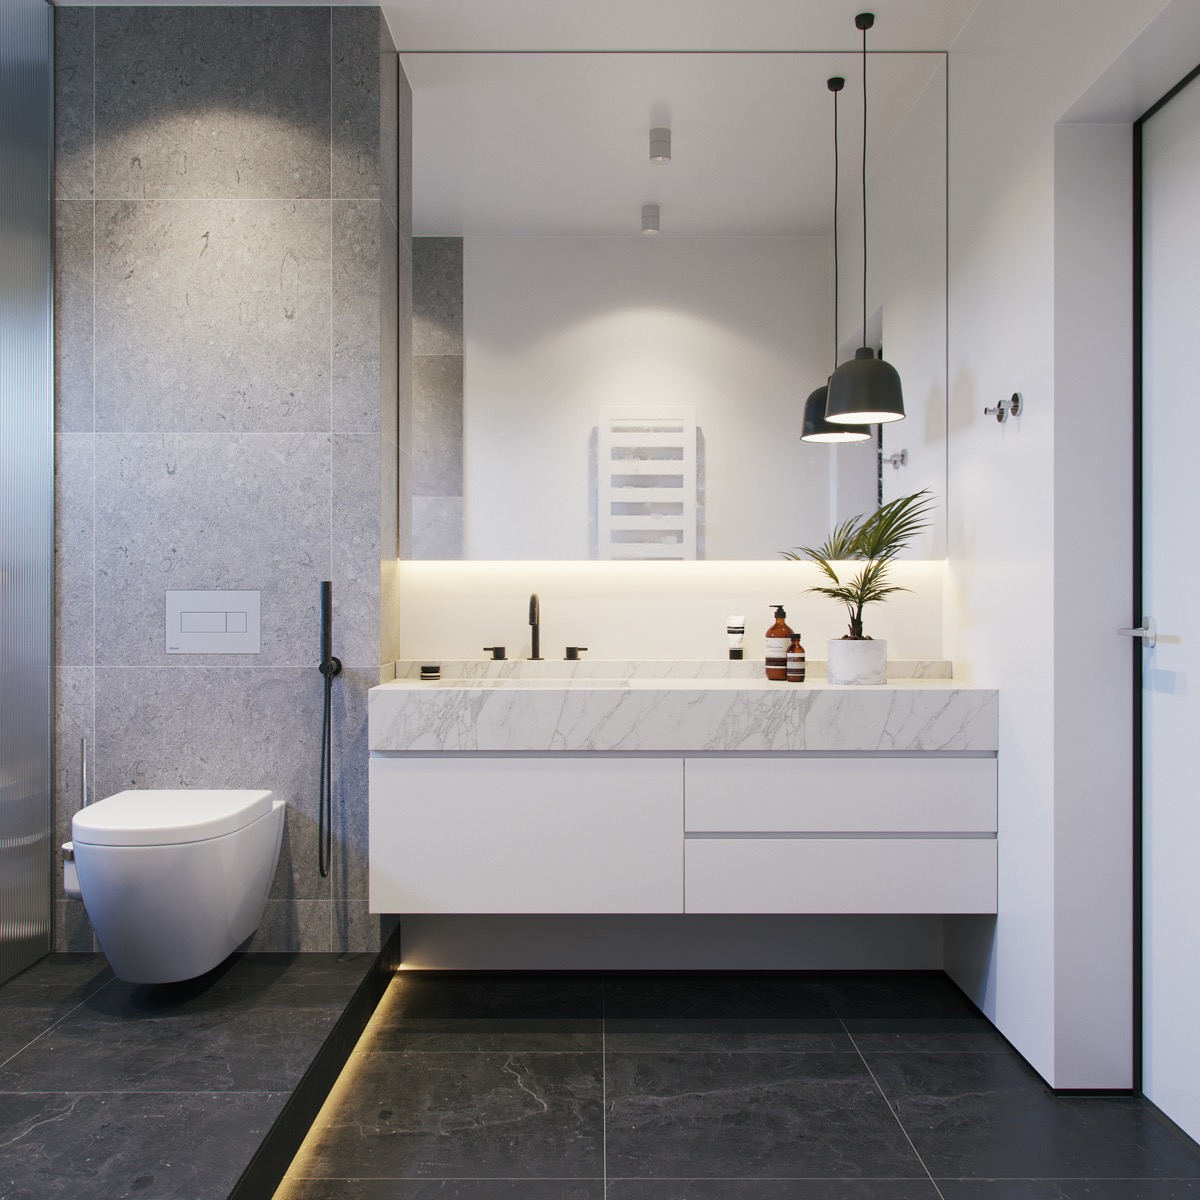 2 Visualizer Alexandr Aranovich This Grey And White Master Bathroom